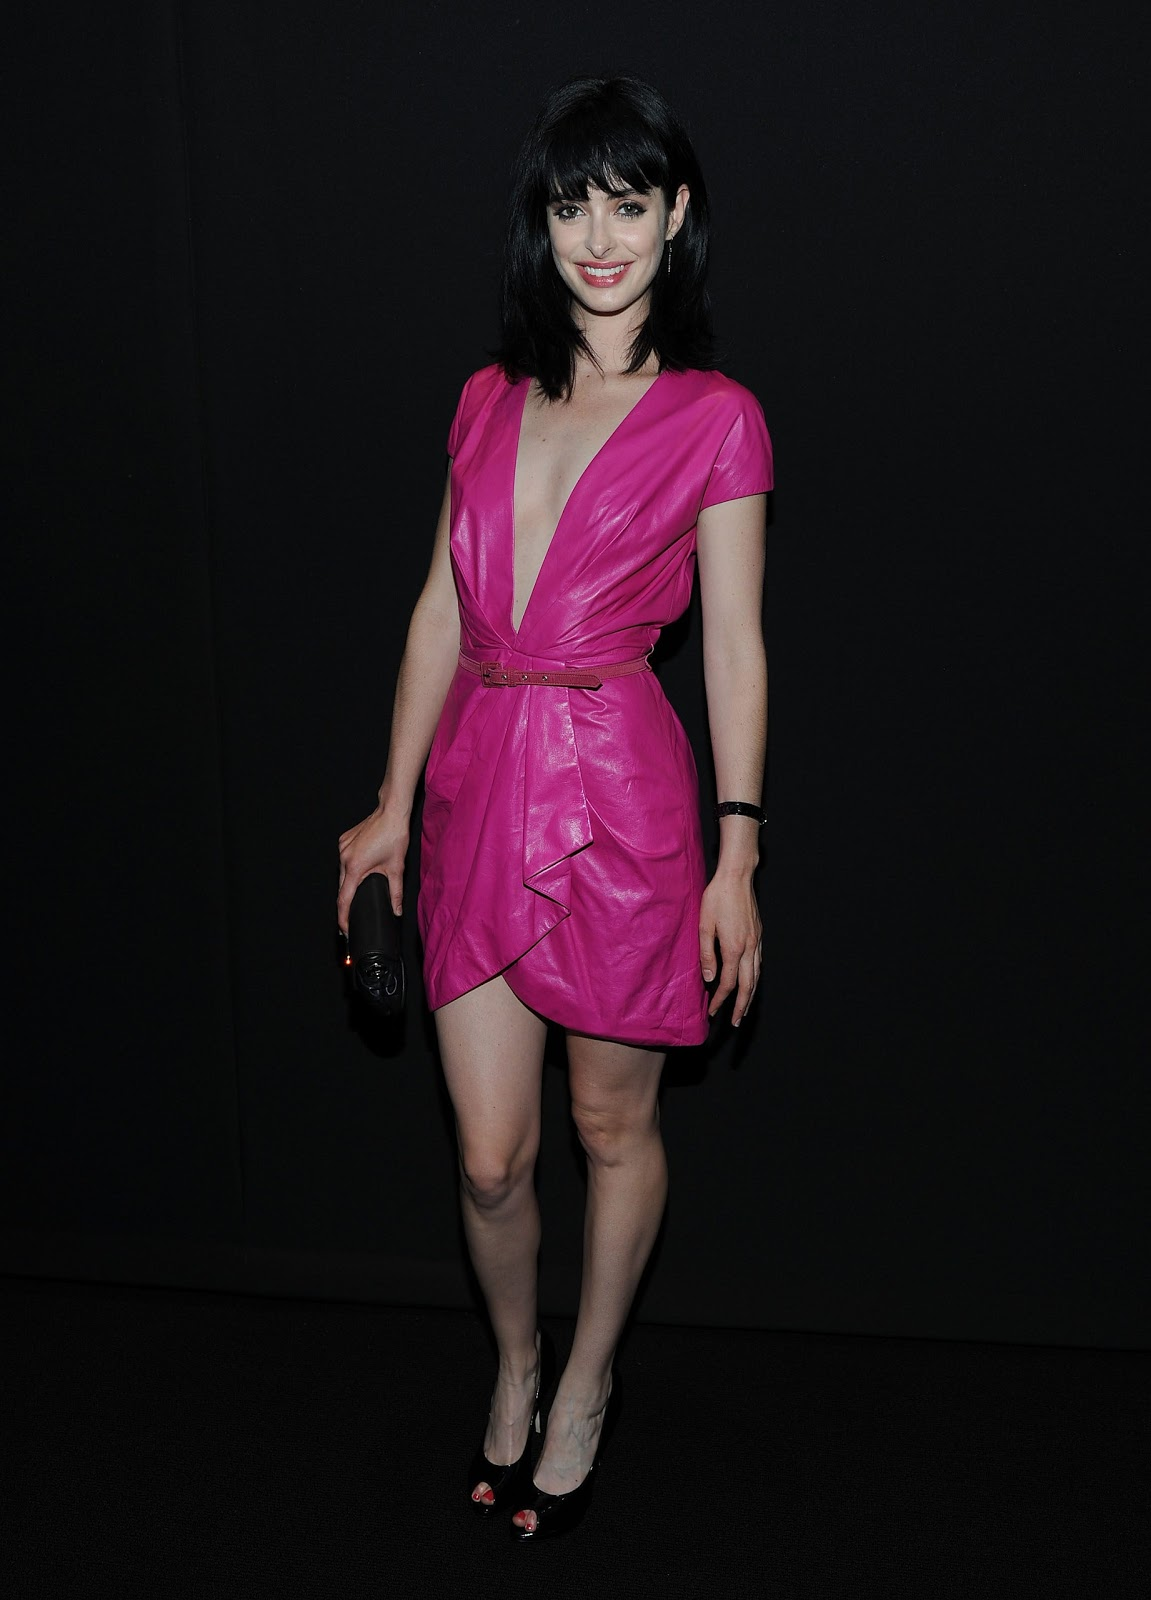 Krysten Ritter at the launch of DIOR VIII - Sexy Leg Cross